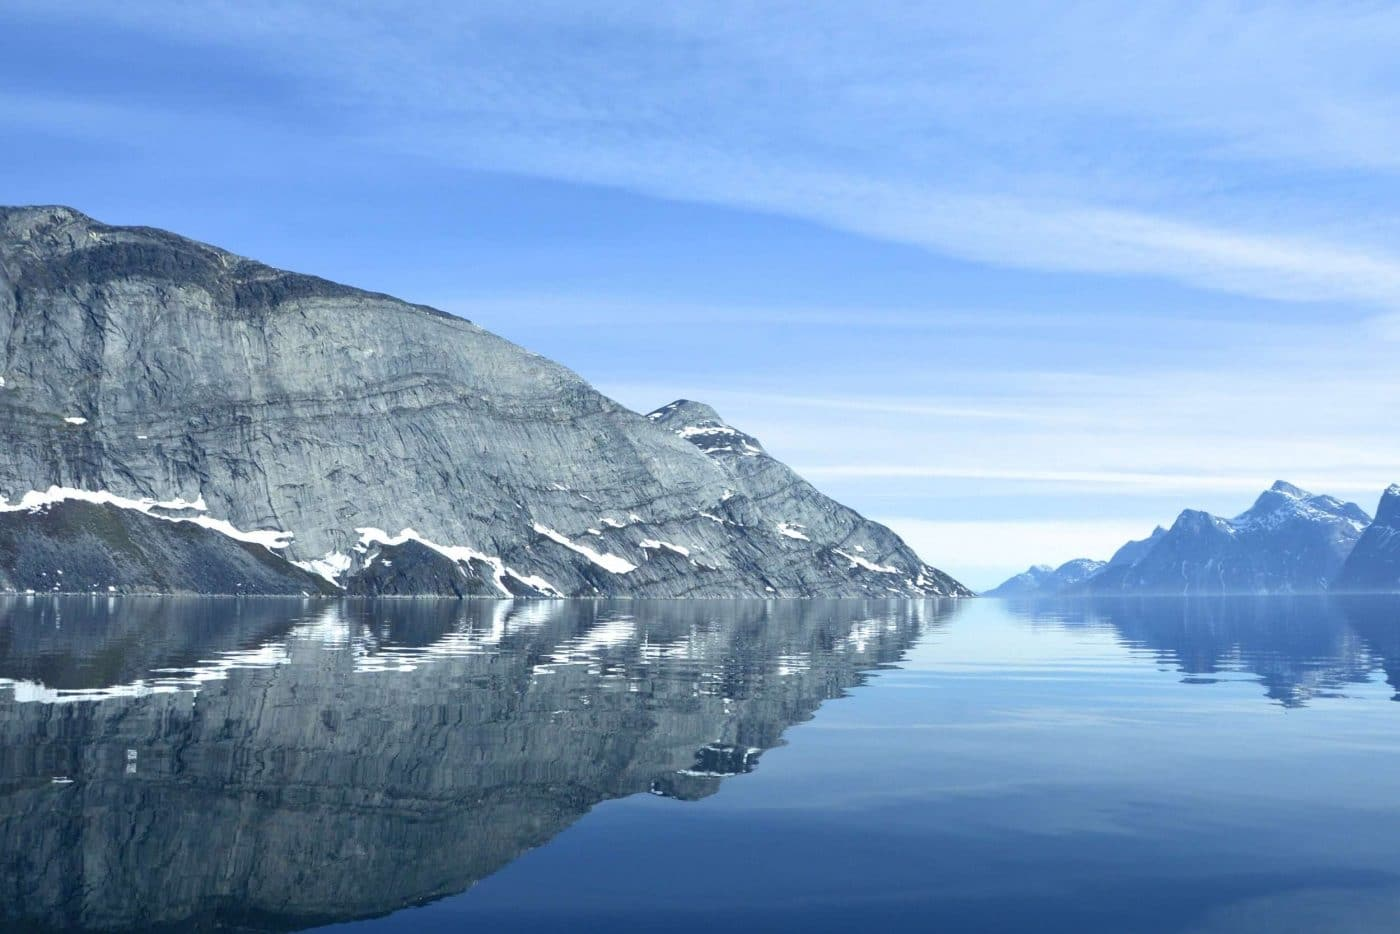 Reflections of mountains in Nuuk Fjord on a sunny day. Photo by Nuuk Water Taxi